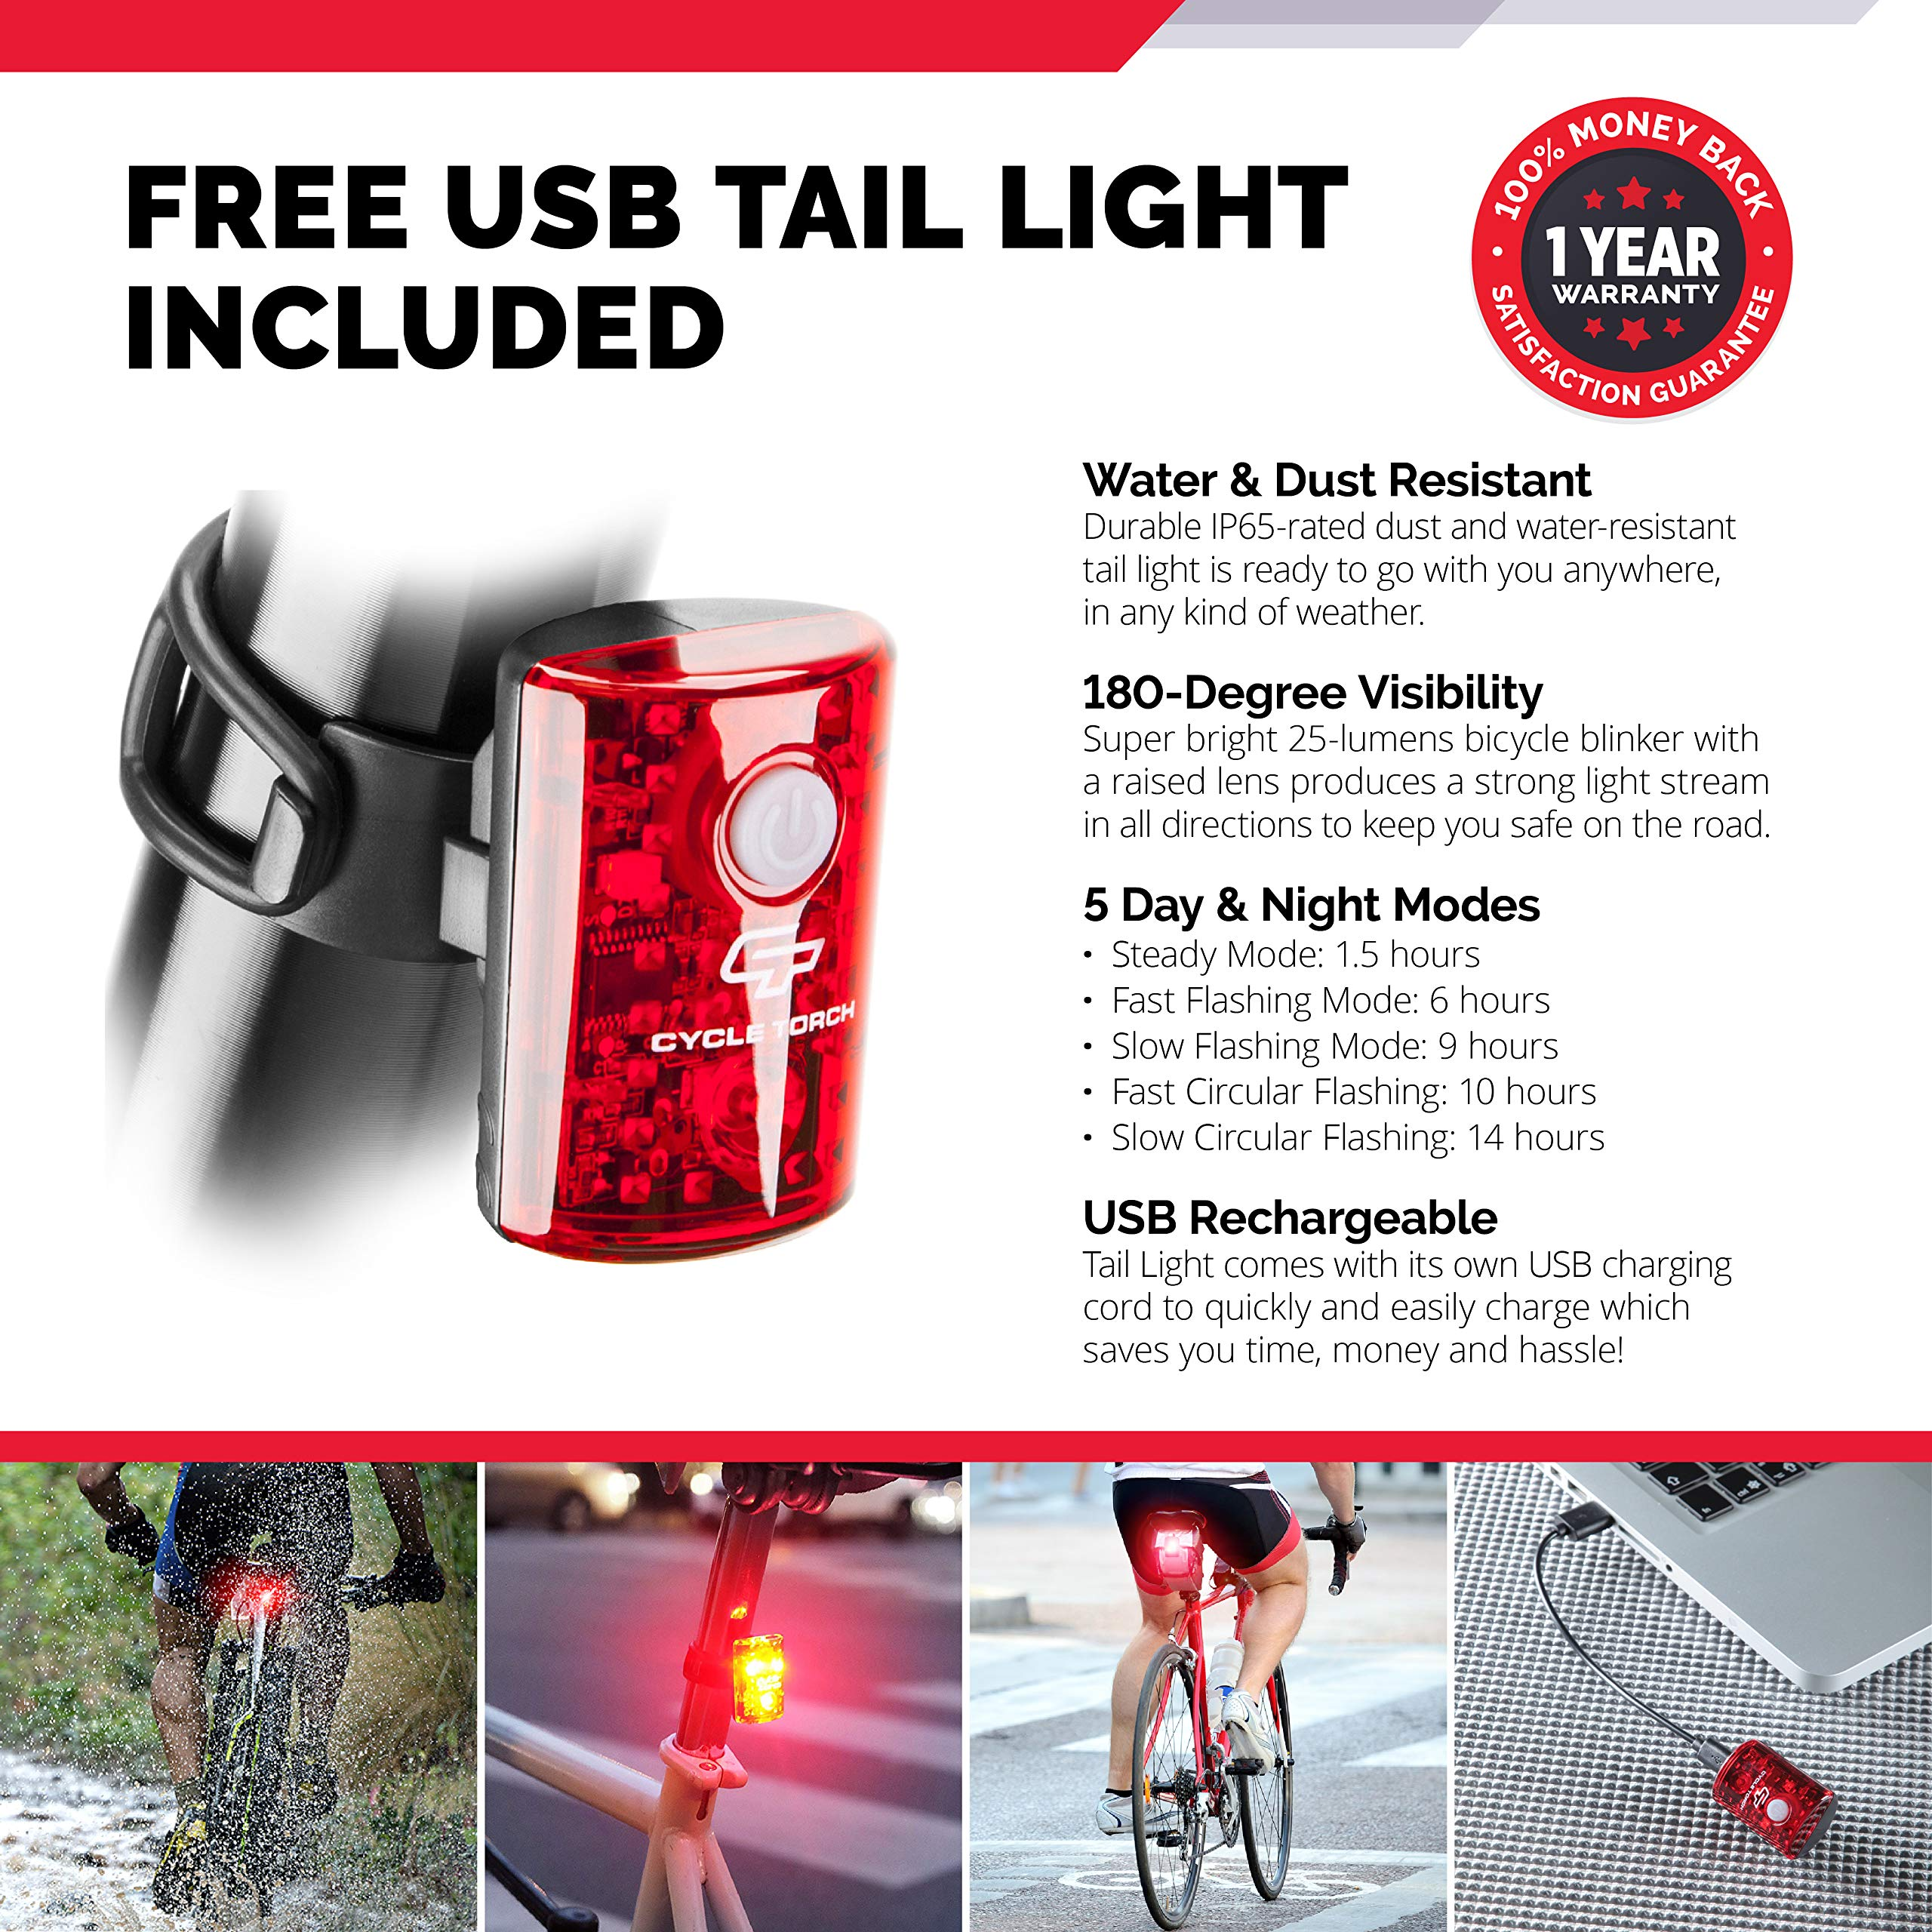 Cycle Torch Night Owl USB Rechargeable Bike Light Set, Perfect Commuter Safety Front and Back Bicycle Light LED Combo, USB Tail Light Included, Compatible with Mountain, Road, Kids & City Bicycles